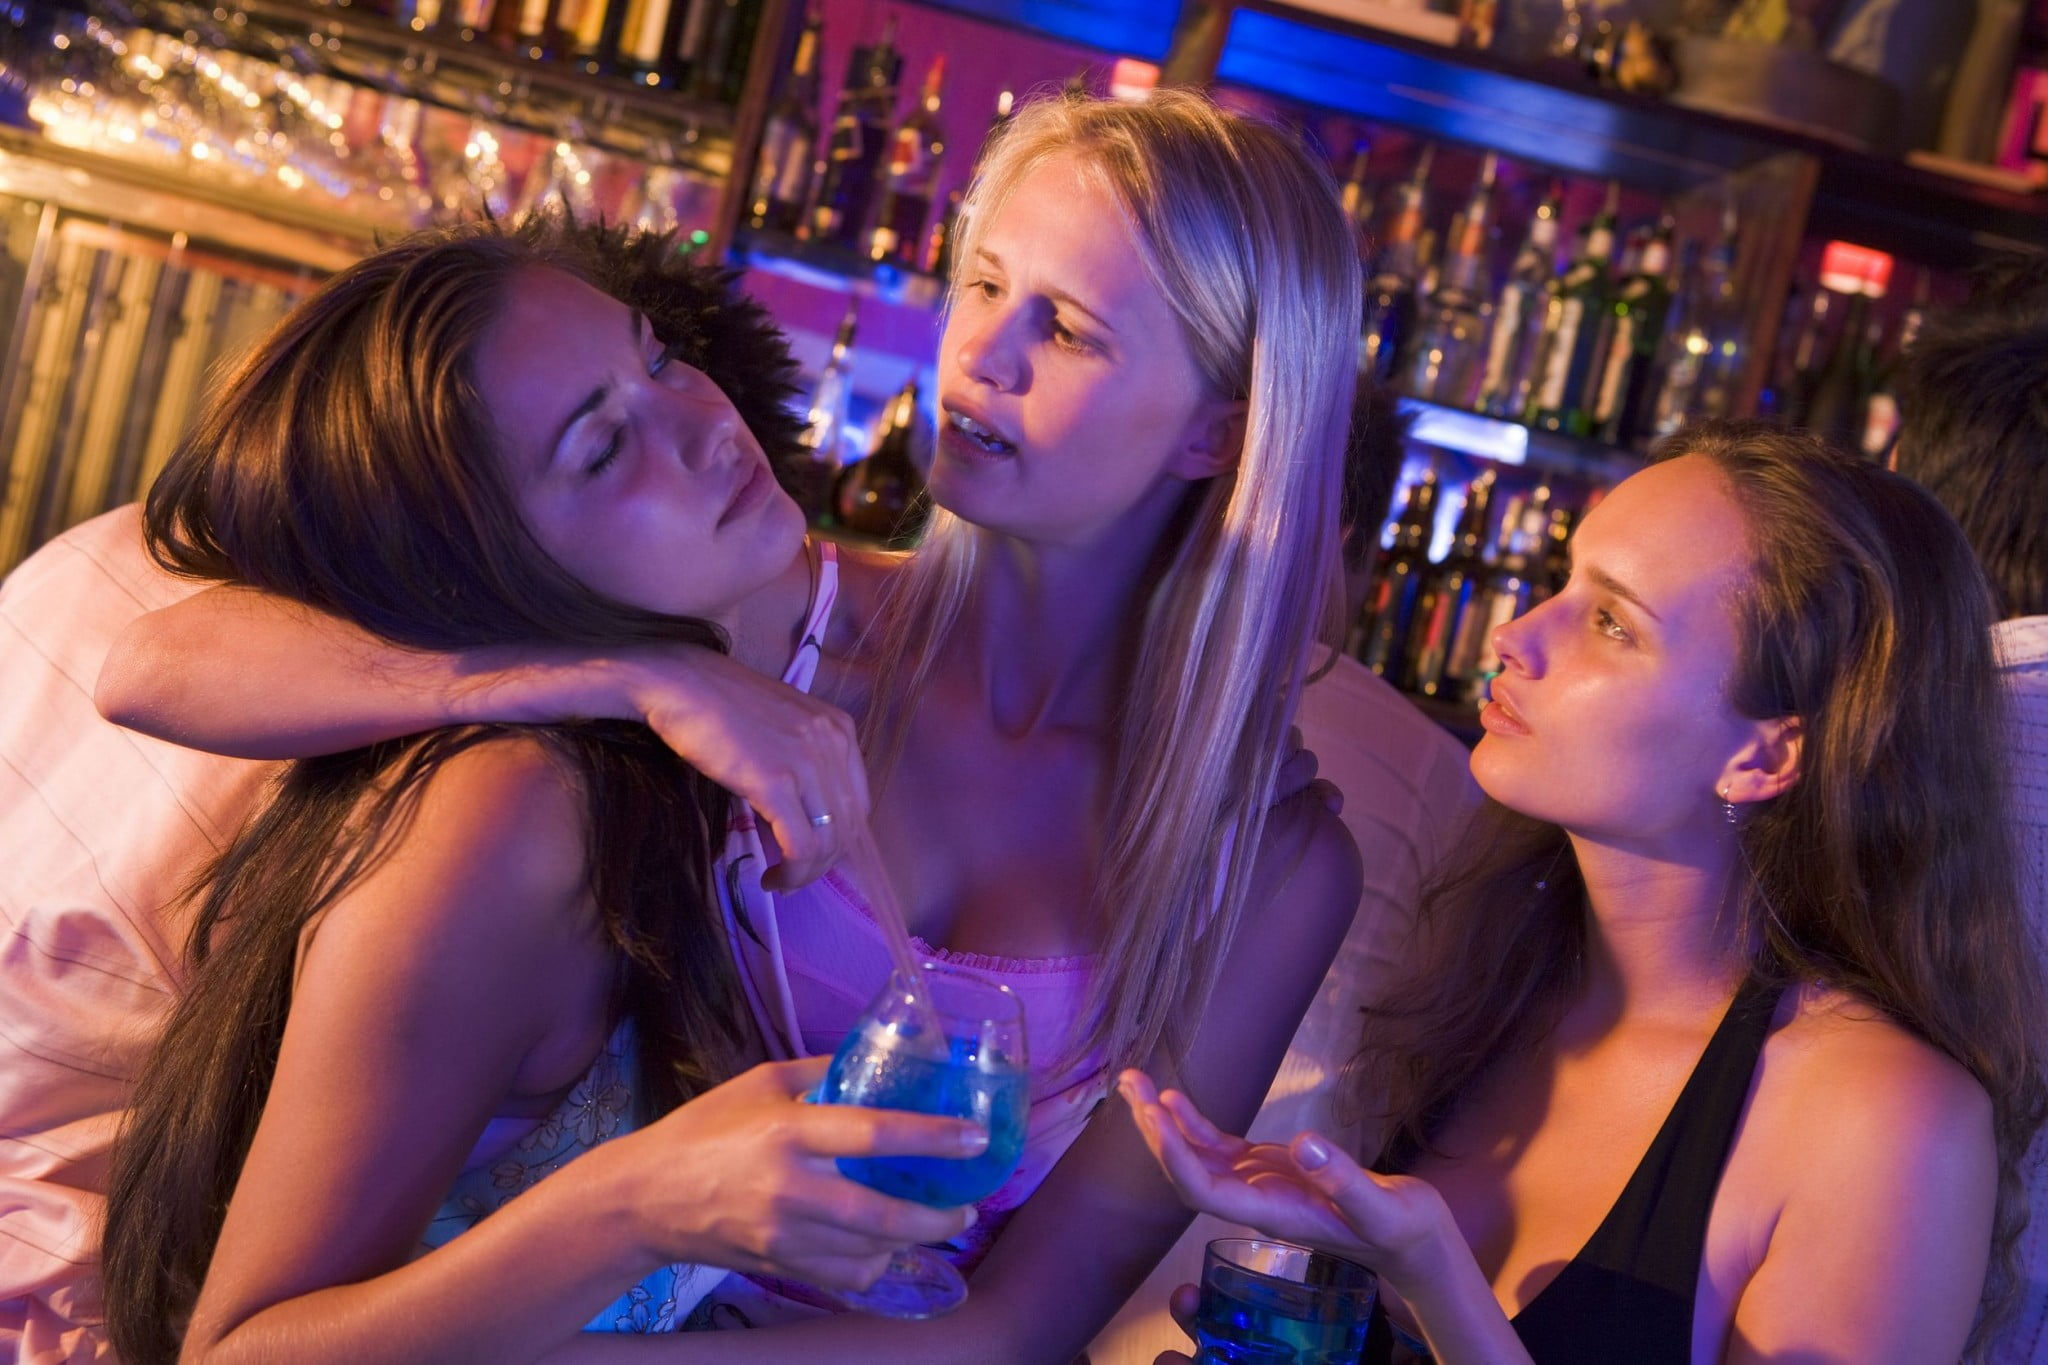 schoolies: three girls at a bar, one looks quite drunk